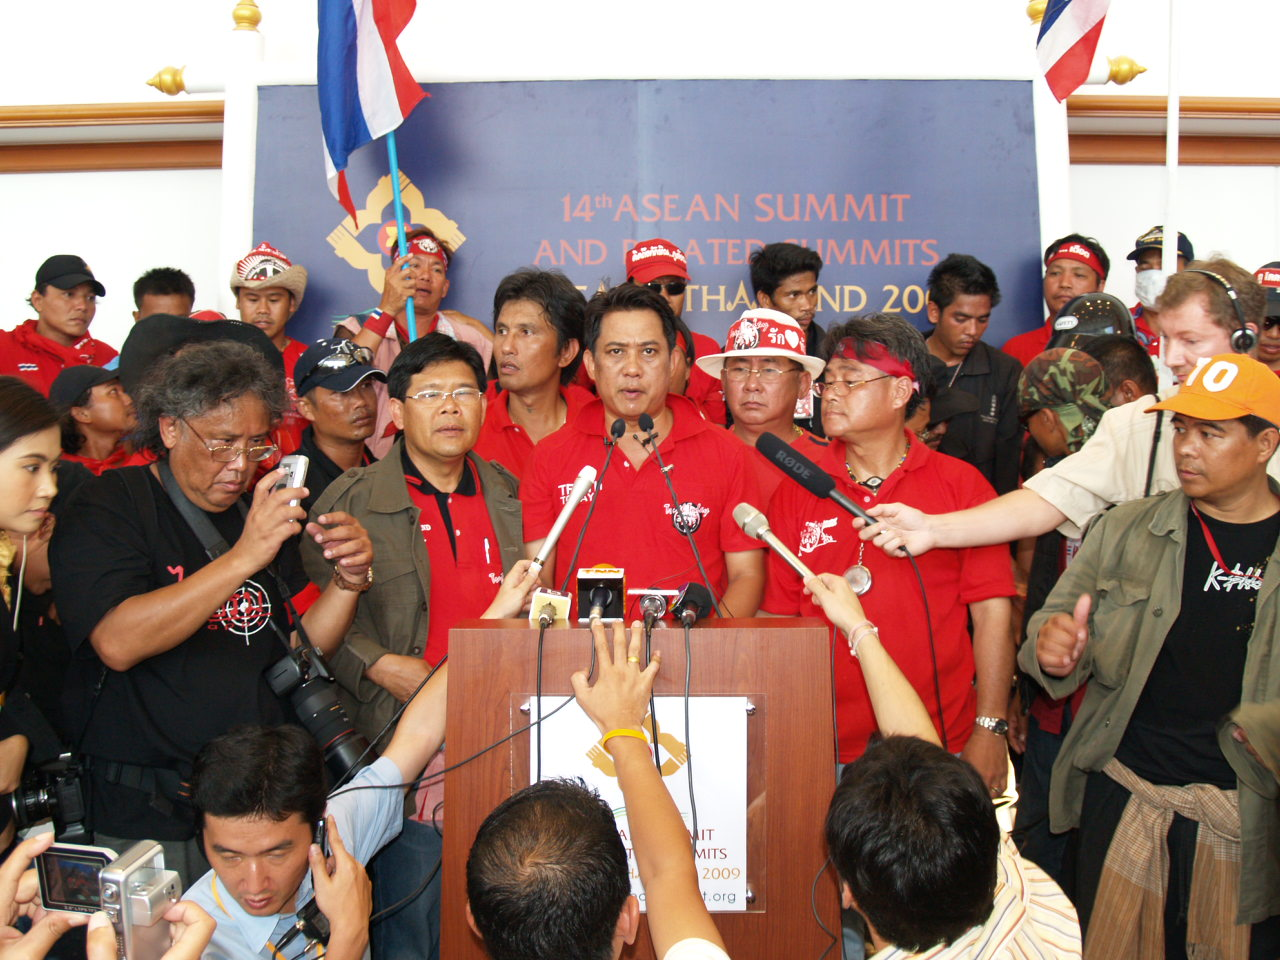 The Appellate Court has upheld a Pattaya court's 2015 ruling sentencing red shirt anti-government agitator Arisman Pongruangrong, show here at the microphone after leading red shirts activists to storm the 2009 ASEAN summit at the Royal Cliff Beach Resort, to four years in prison.